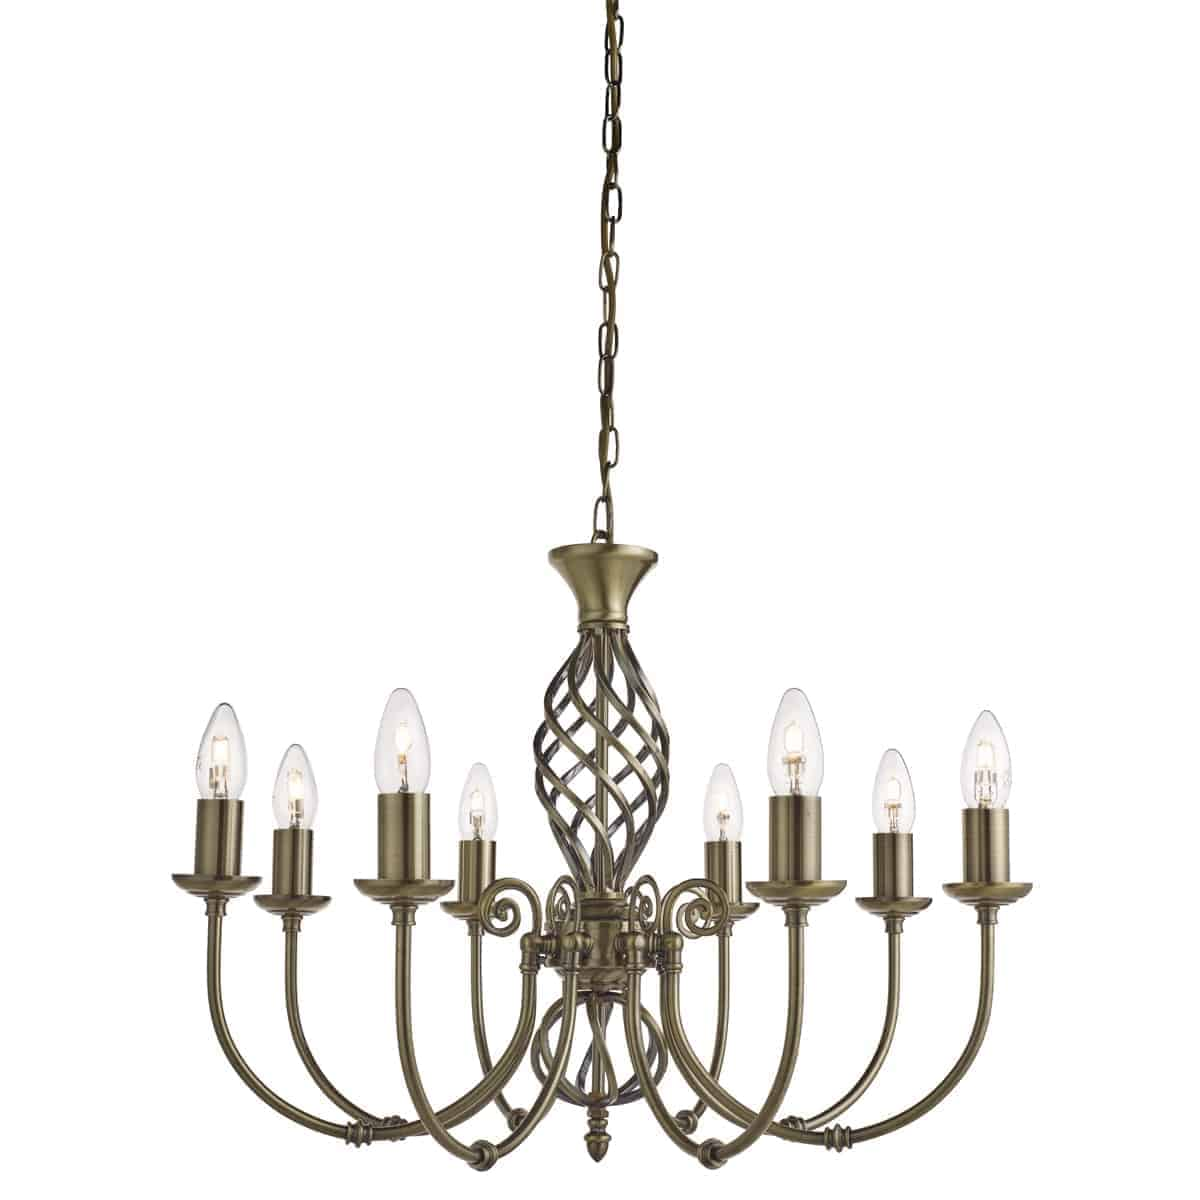 Searchlight 8398-8 Zanzibar Antique Brass 8 Light Fitting with Ornate Twisted Column